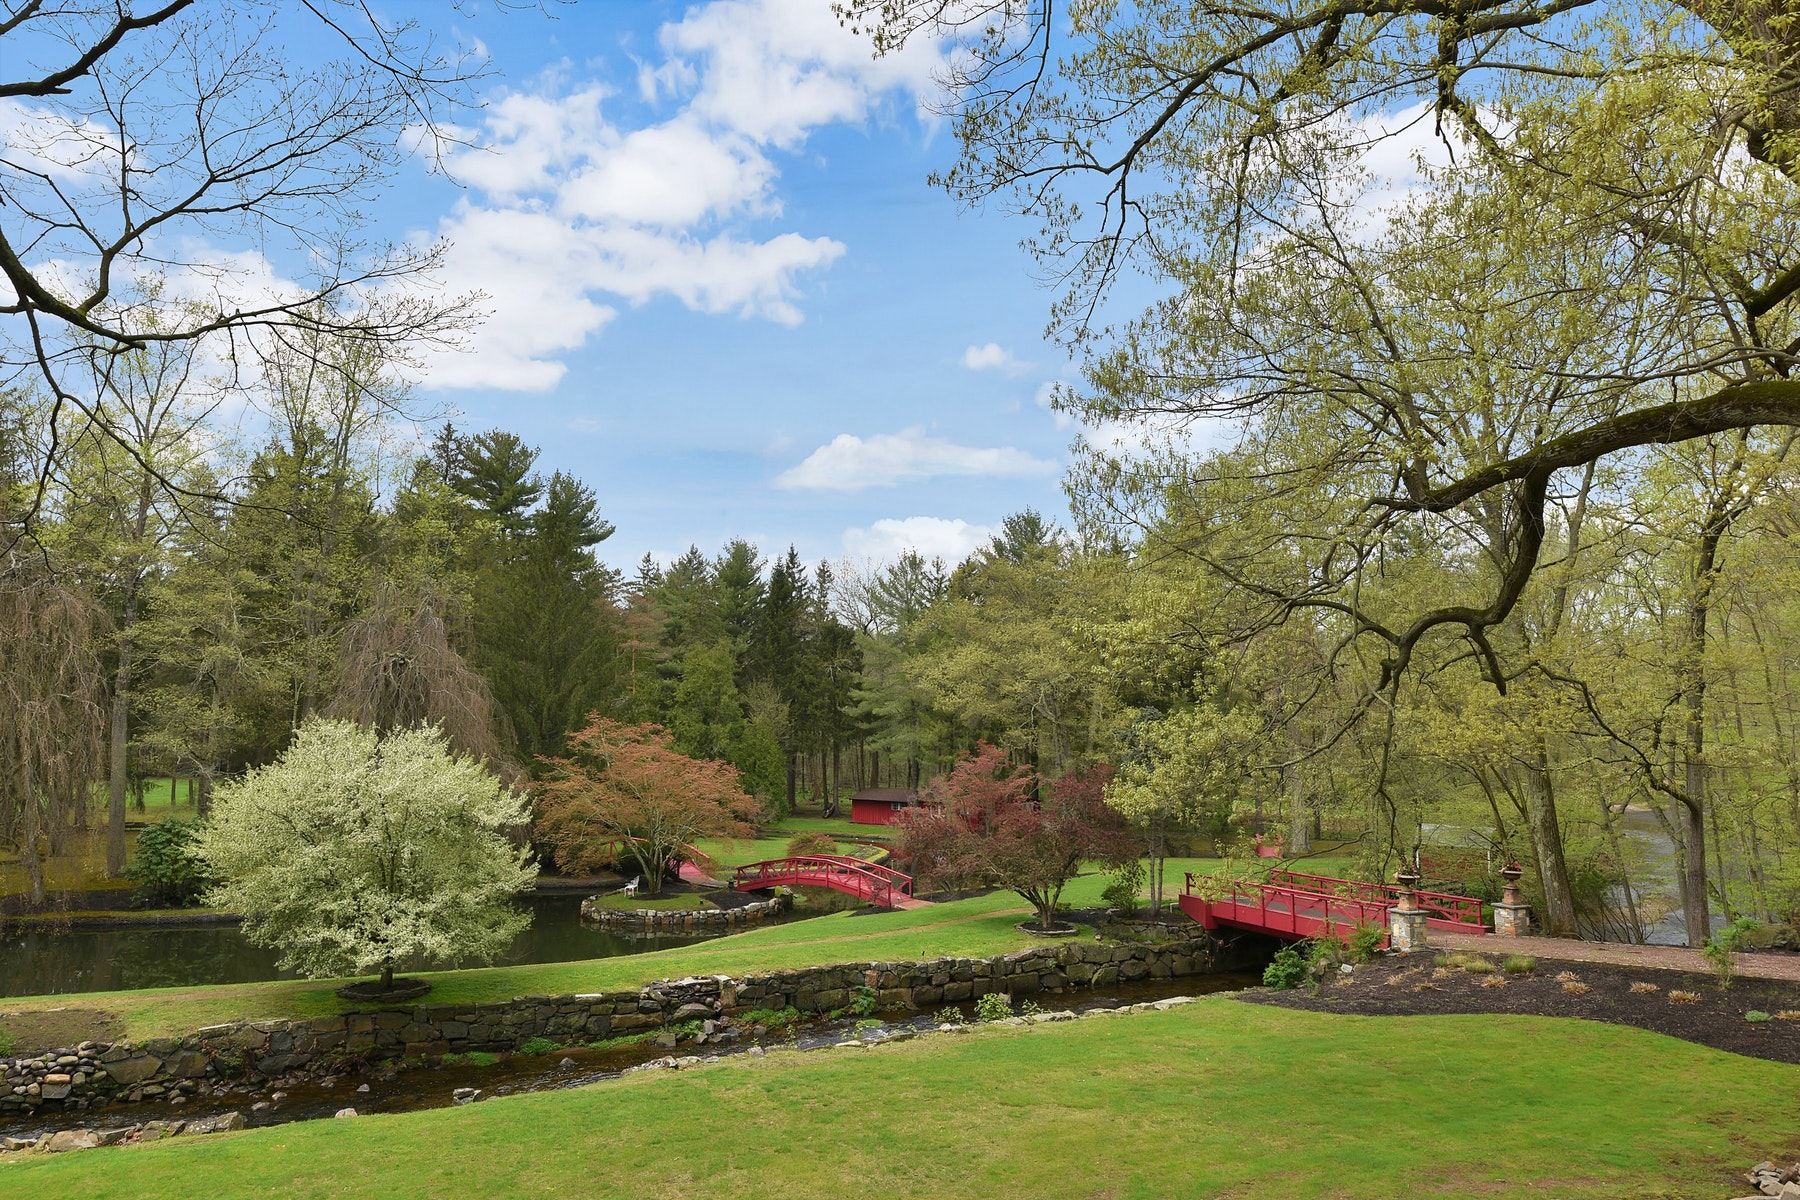 Single Family Homes for Sale at 6 ACRE DREAM ESTATE 37 E Saddle River Rd Saddle River, New Jersey 07458 United States